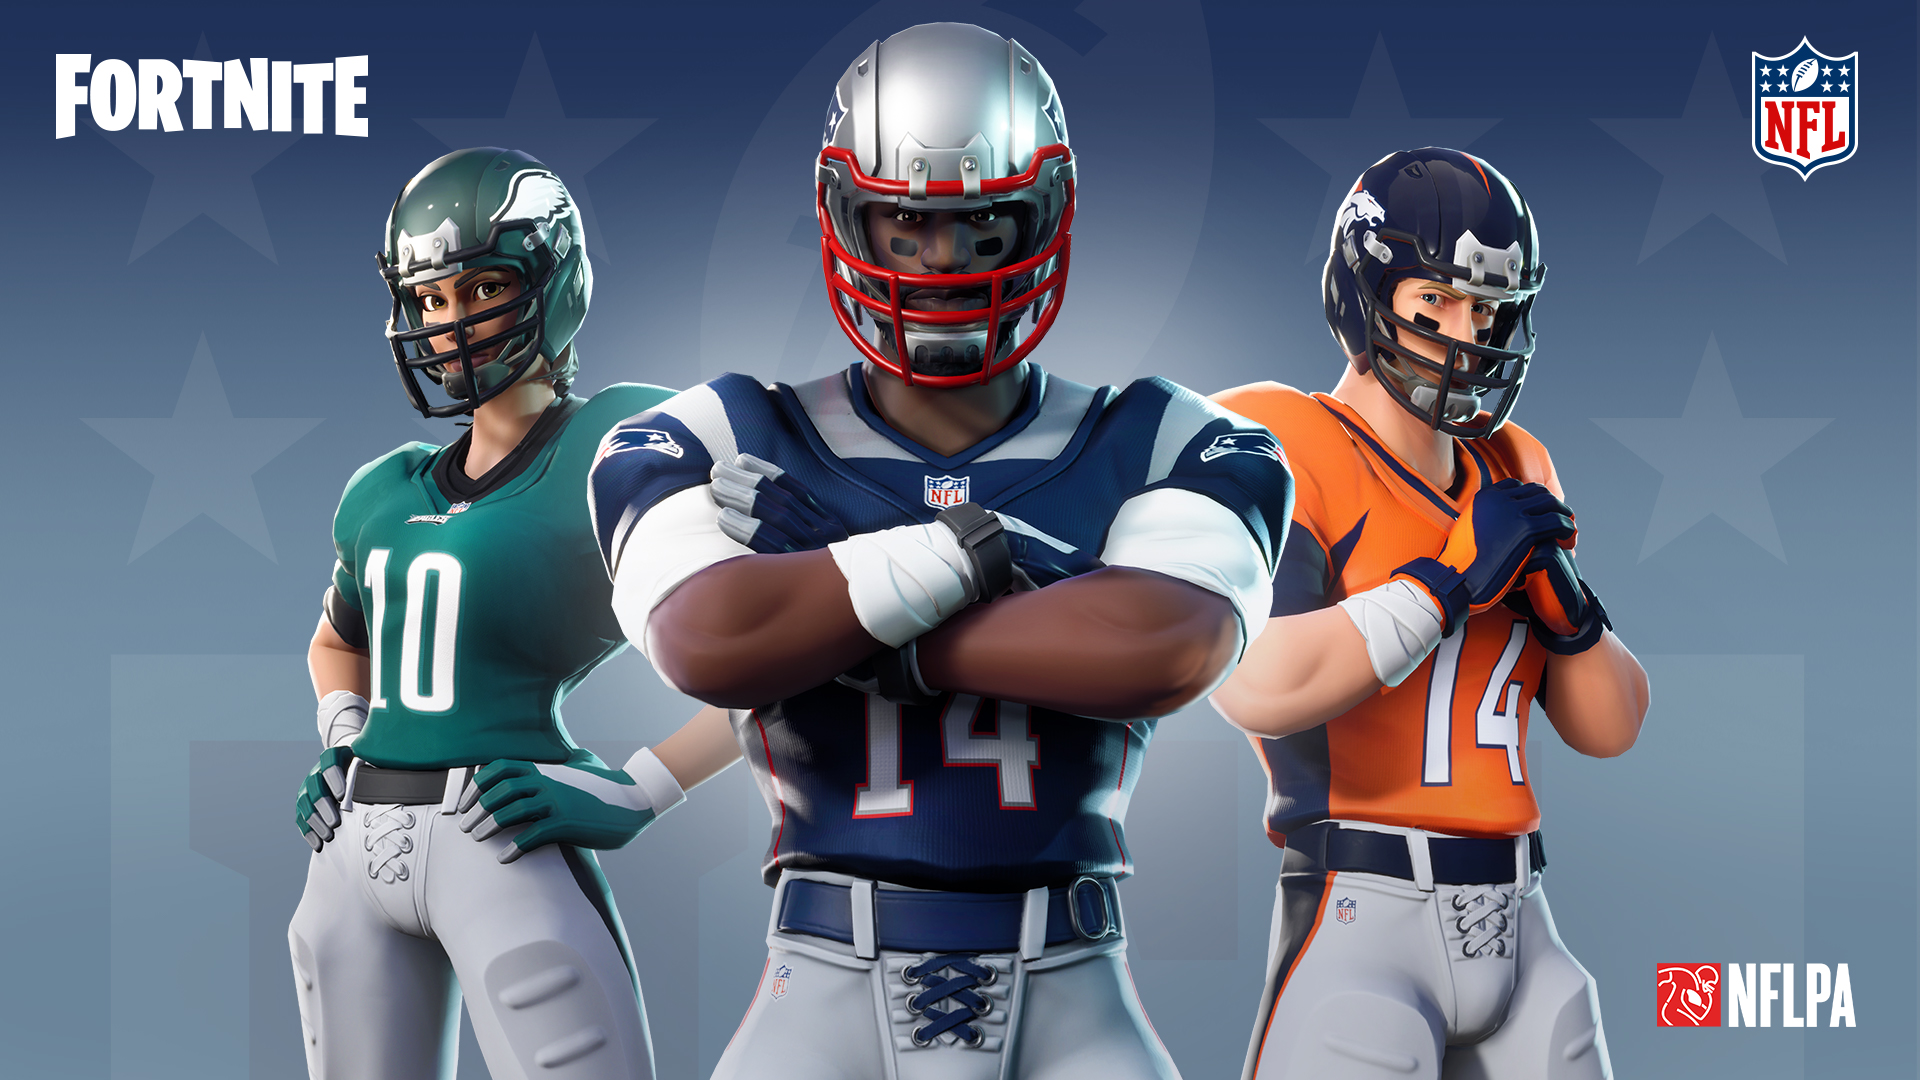 NFL Lends Uniform Designs for Fortnite Character Customization